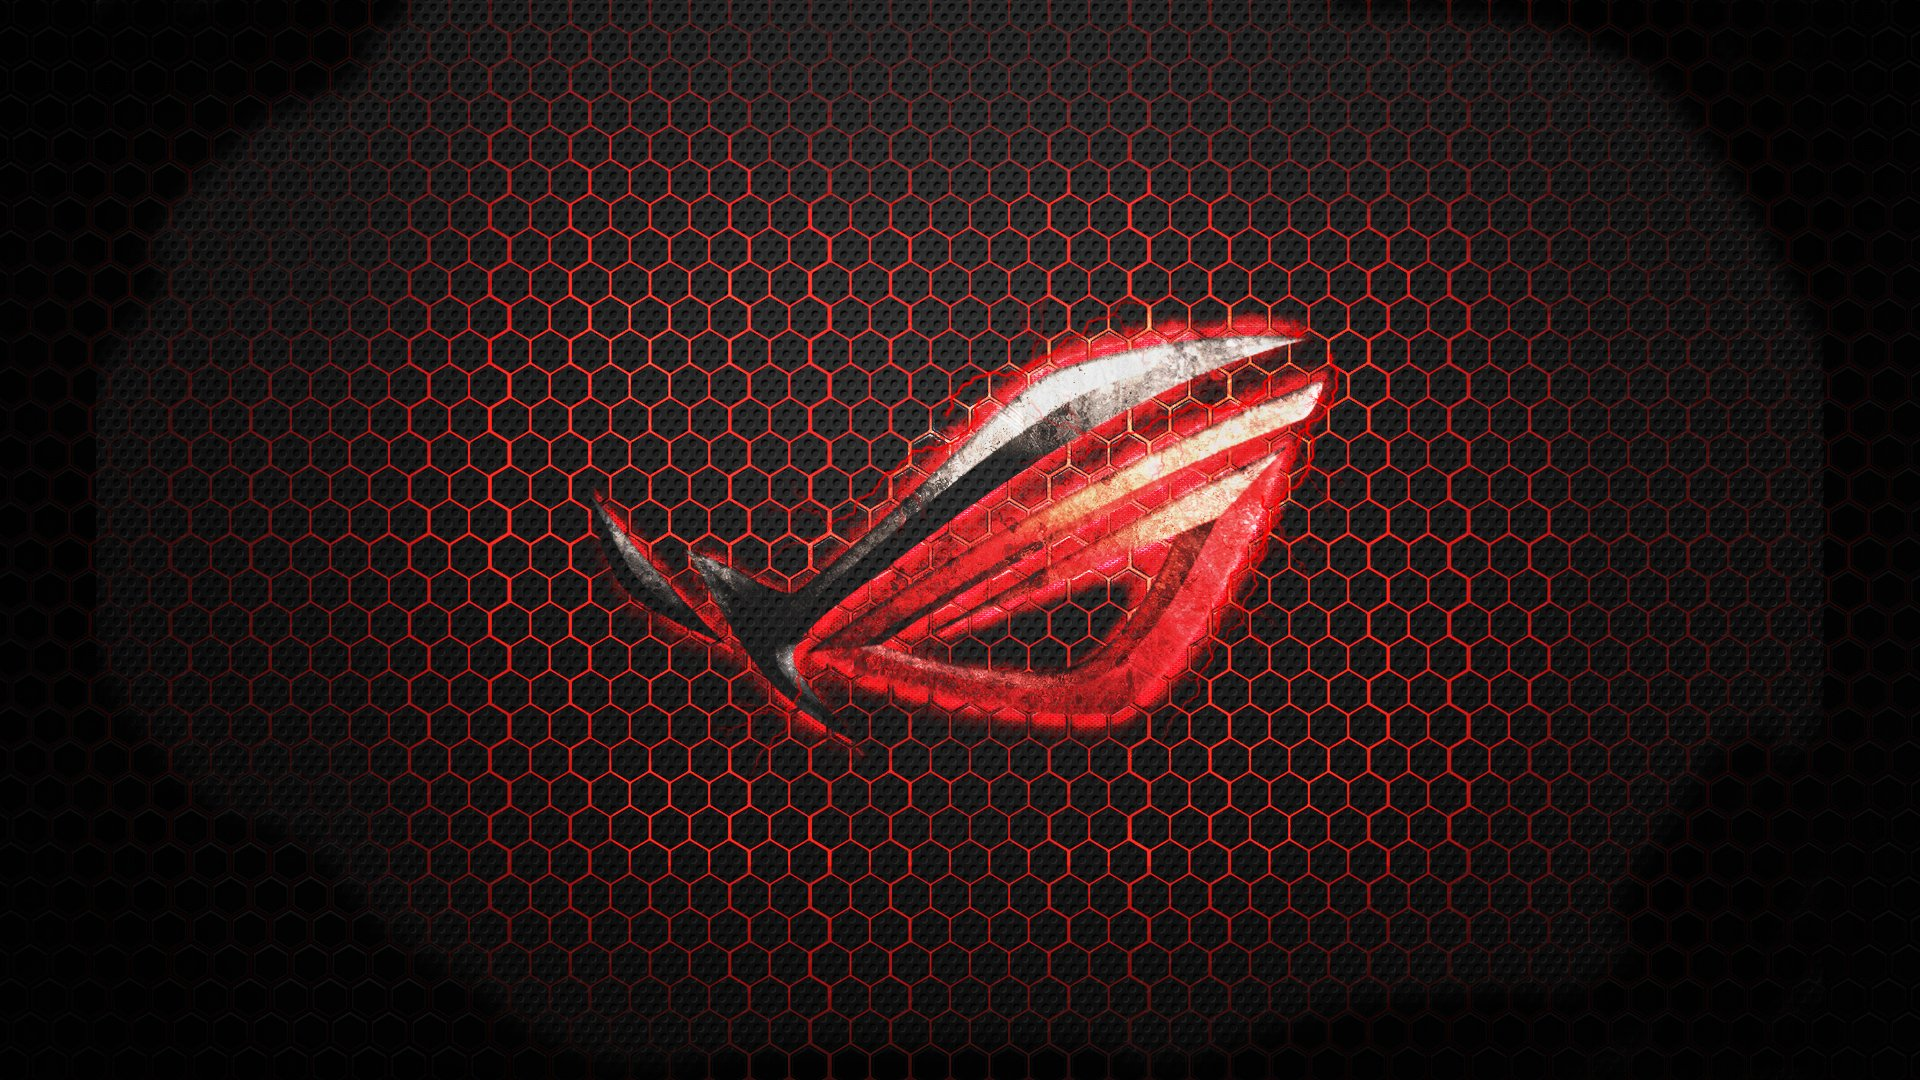 Red Asus Wallpaper: Asus HD Wallpapers, Pictures, Images